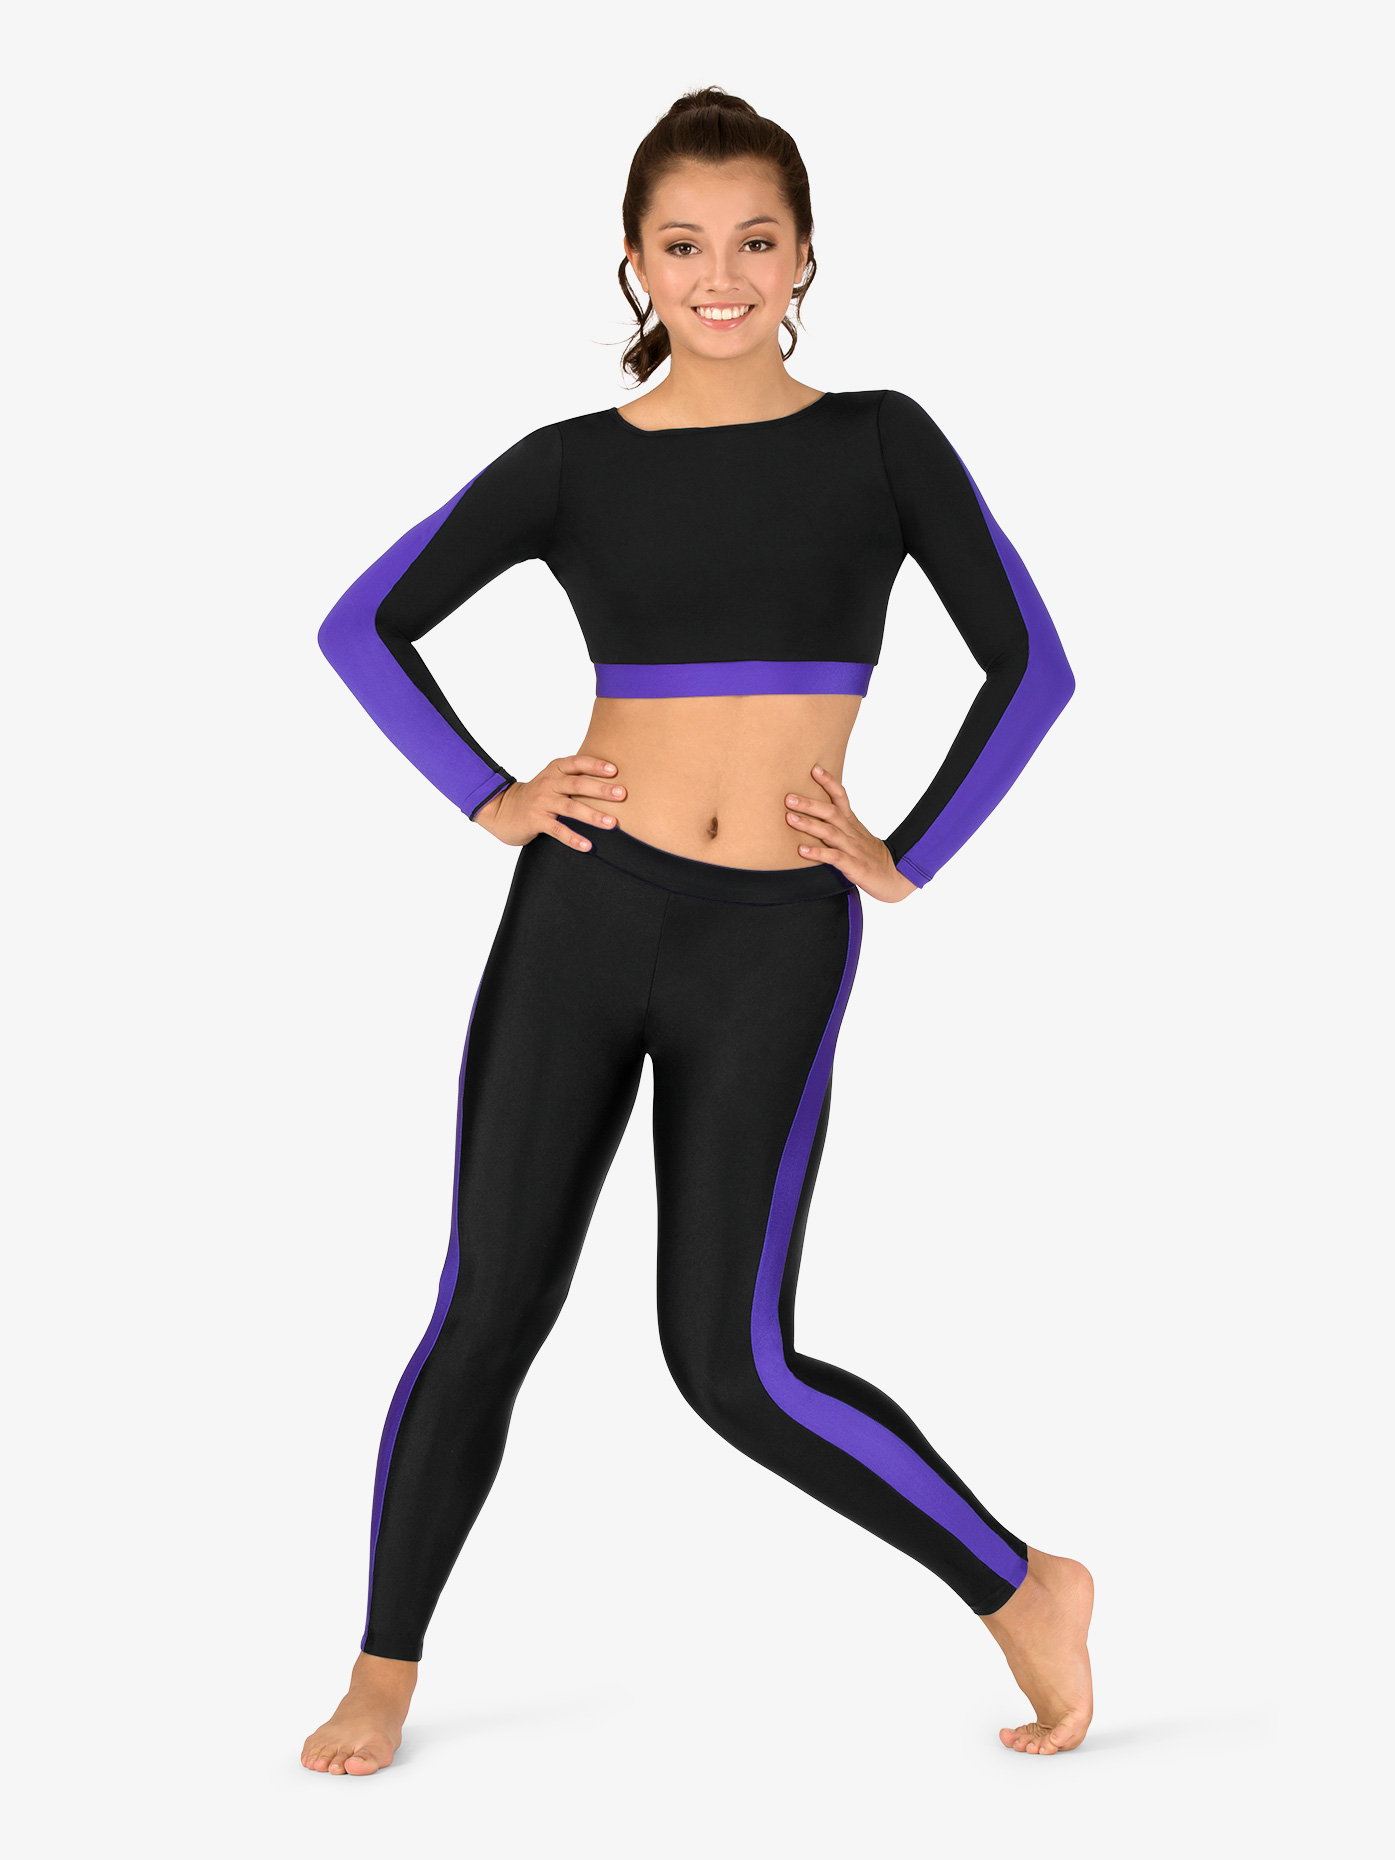 47a75cea247 Womens Plus Size Team Two-Tone Compression Leggings - Style No BT5220P. Loading  zoom